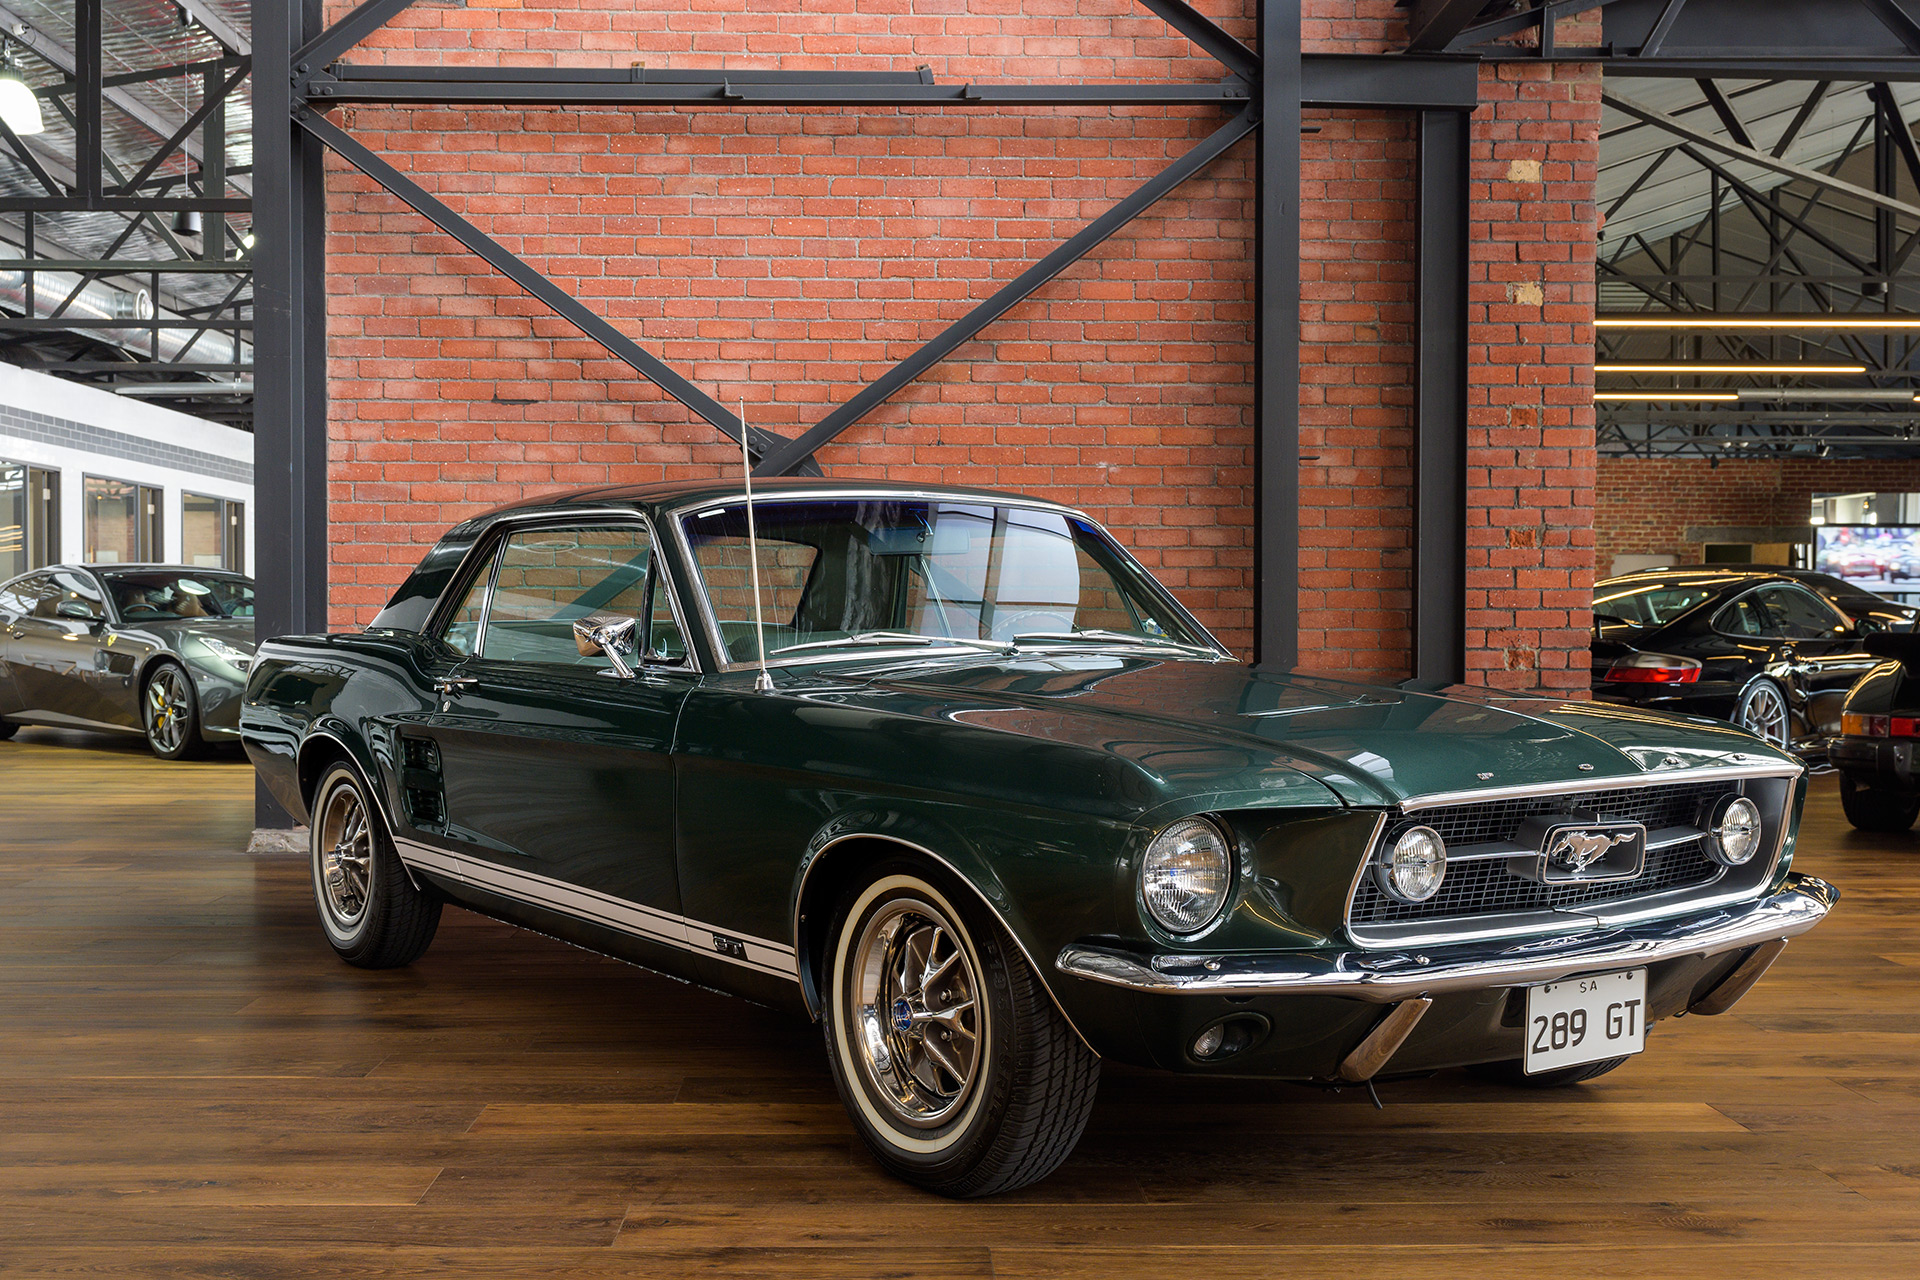 mustang ford 1967 289 gt hardtop green richmonds classic cars